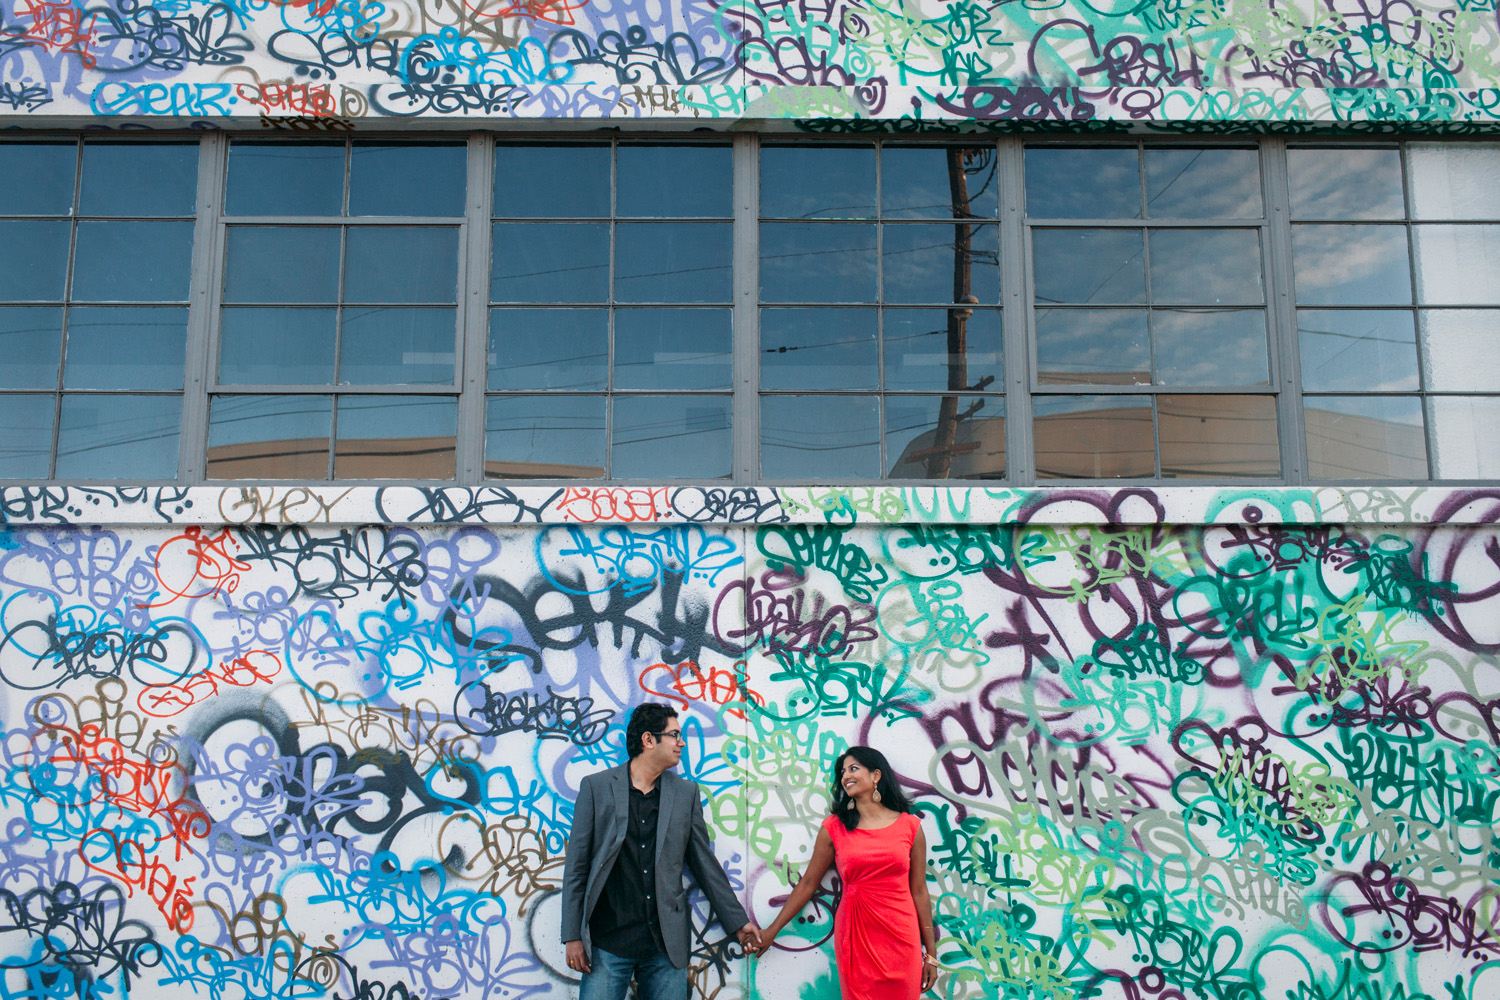 Karen and Uday in front of graffiti walls in the Design District.